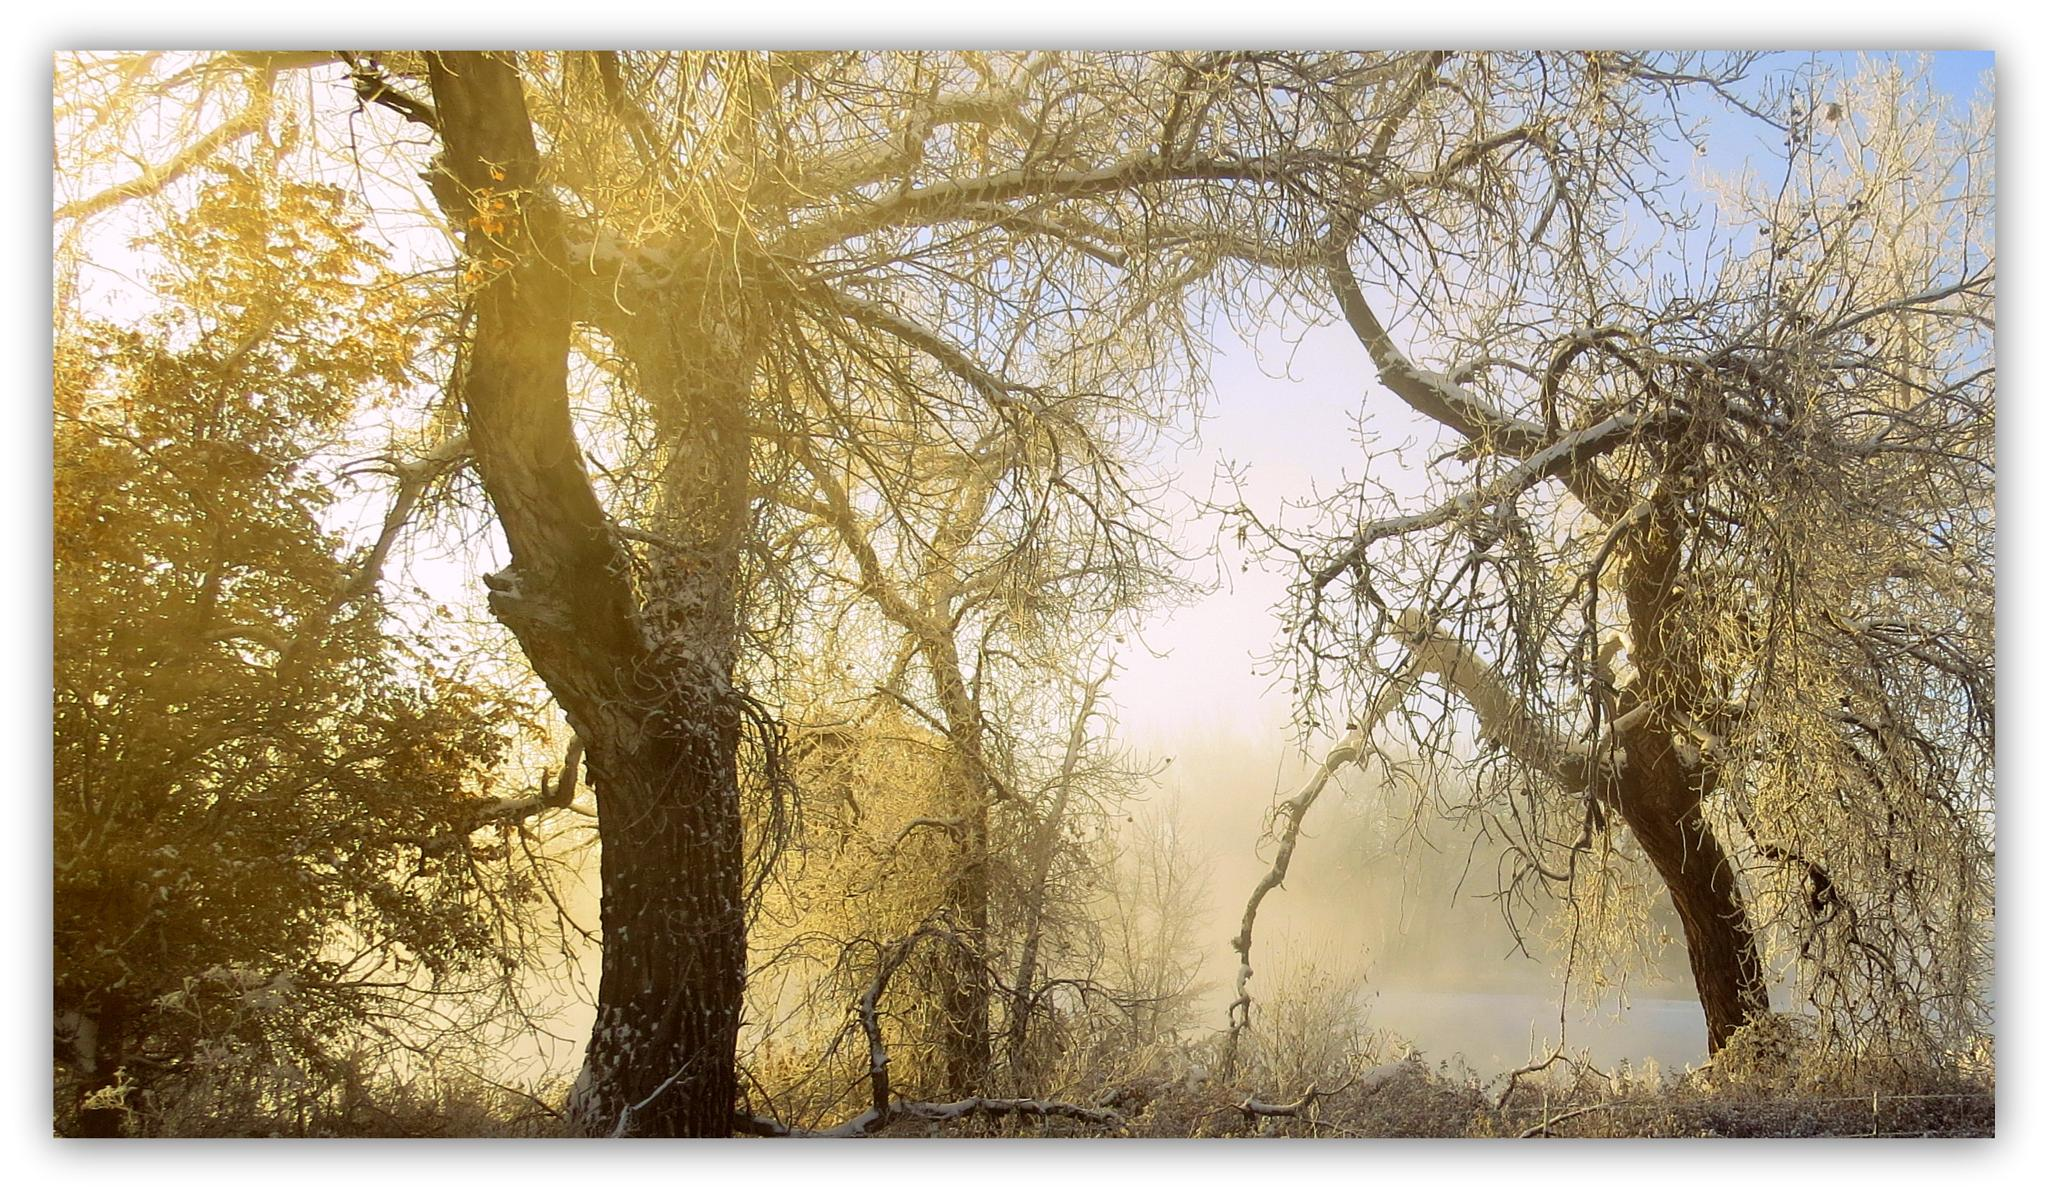 Trees and fog by lori.adkins.58